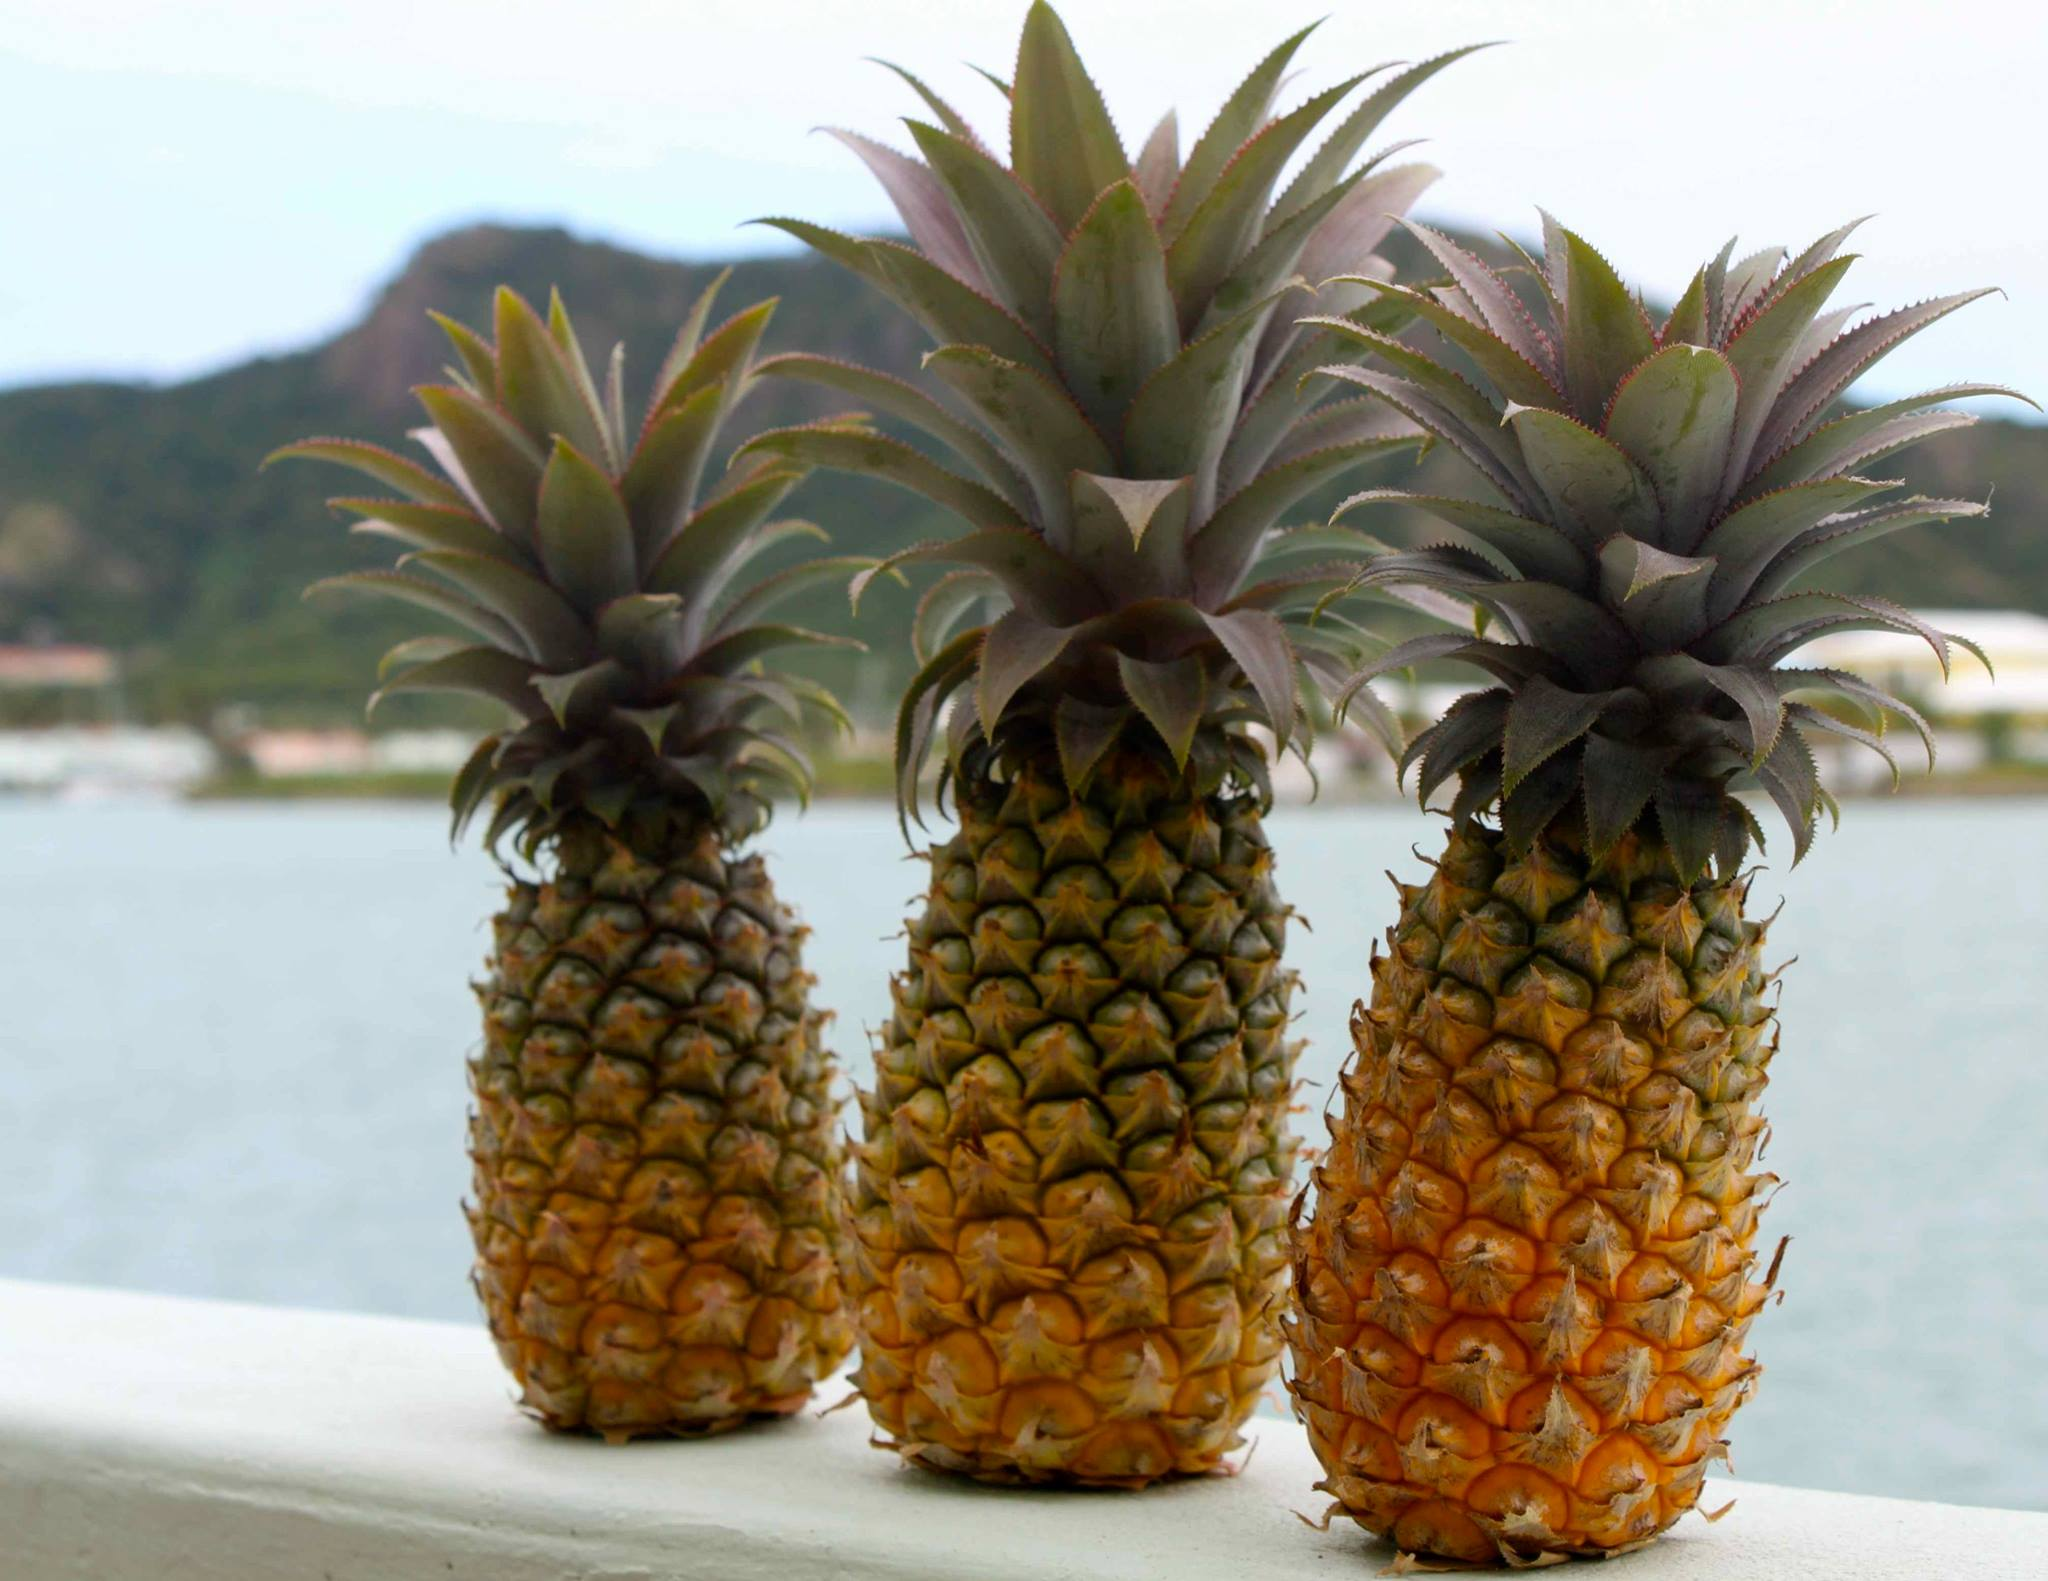 Take A Bite Into The Rare & Refreshing Antigua Black Pineapple